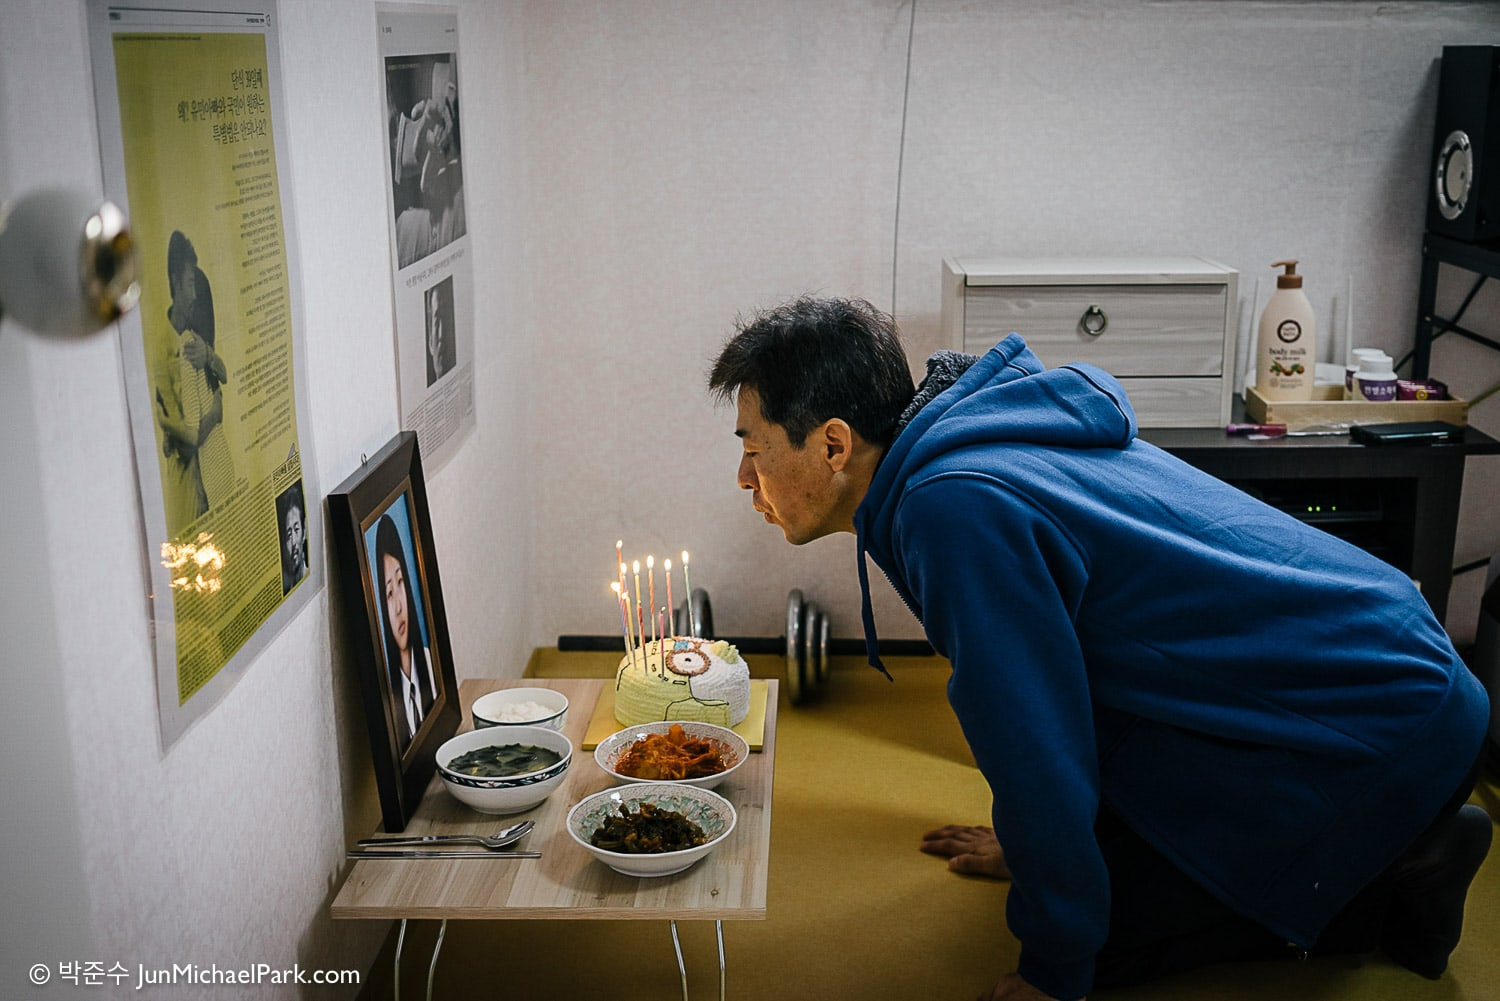 """Happy birthday, my princess."" Kim blows out birthday candles on Yu-min's birthday. Had she been alive, Yu-min would have turned 18 on Jan 14."